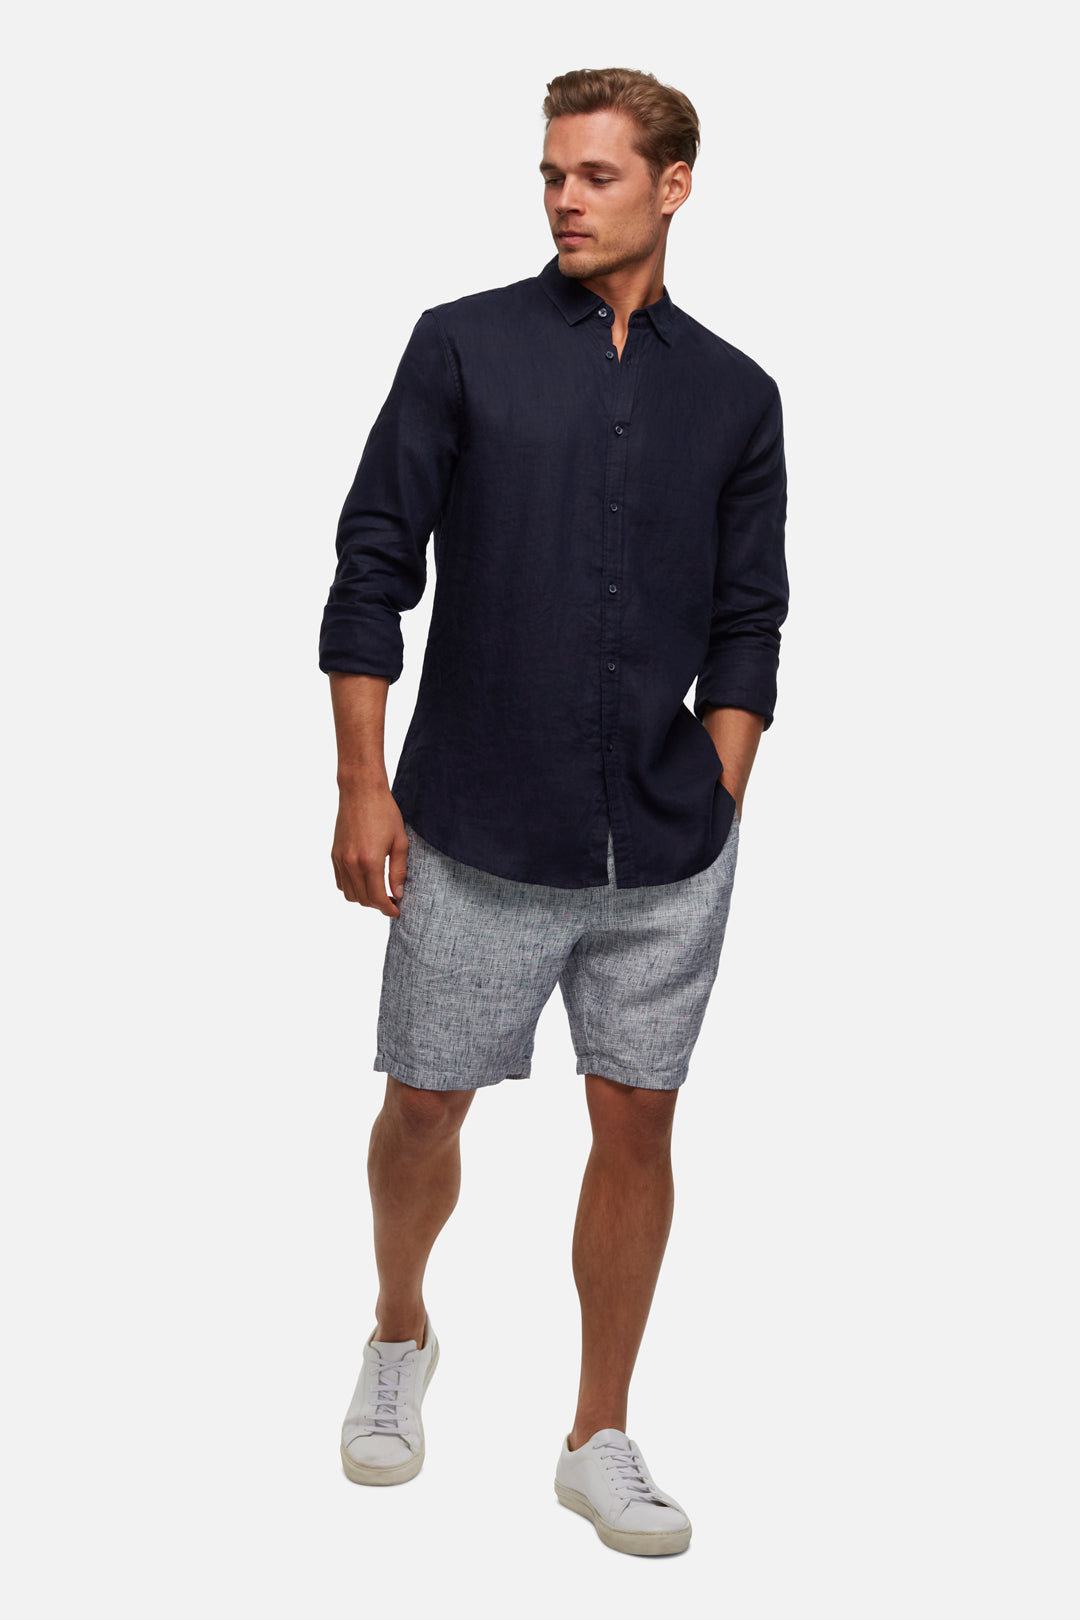 The Marina Linen Short - Salt & Pepper